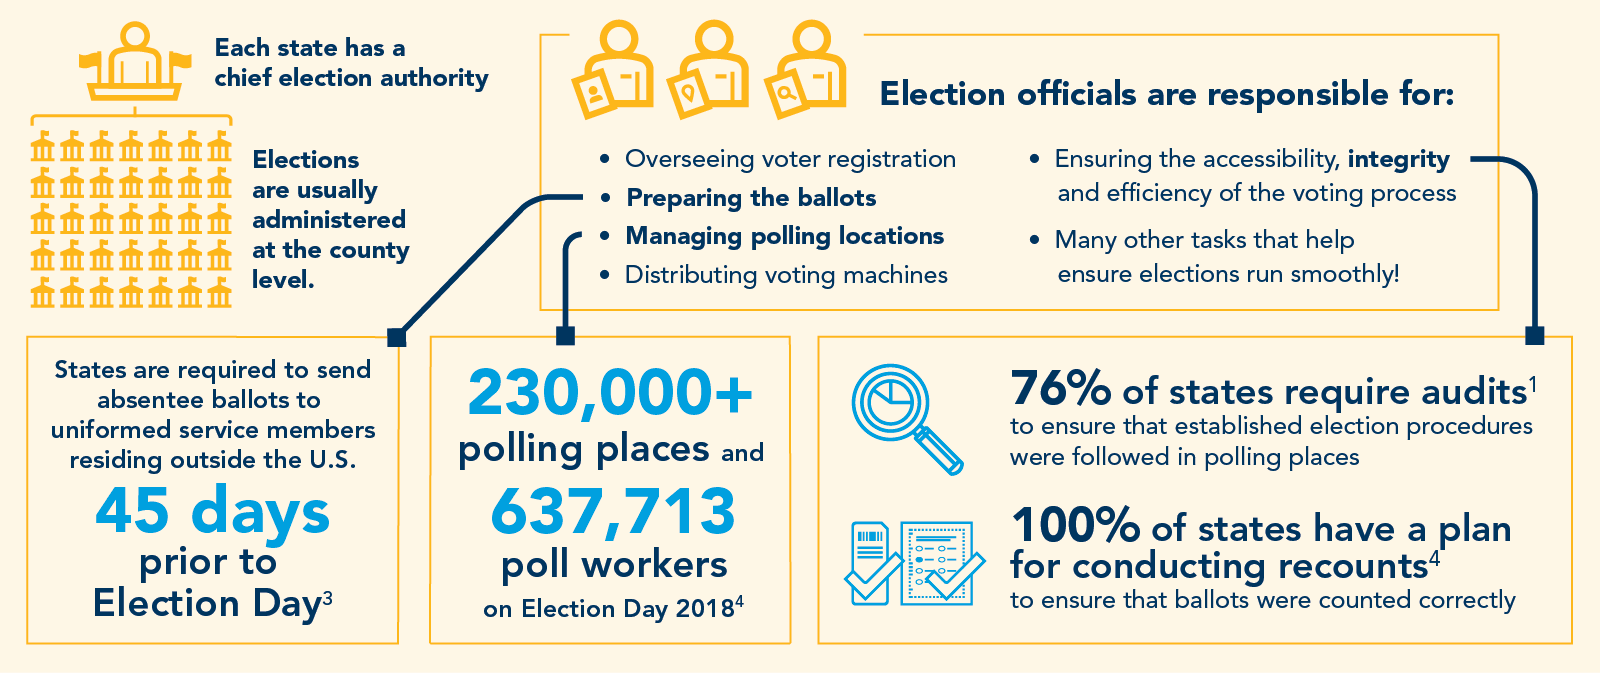 Each state has a chief election authority. Elections are usually administered at the county level.